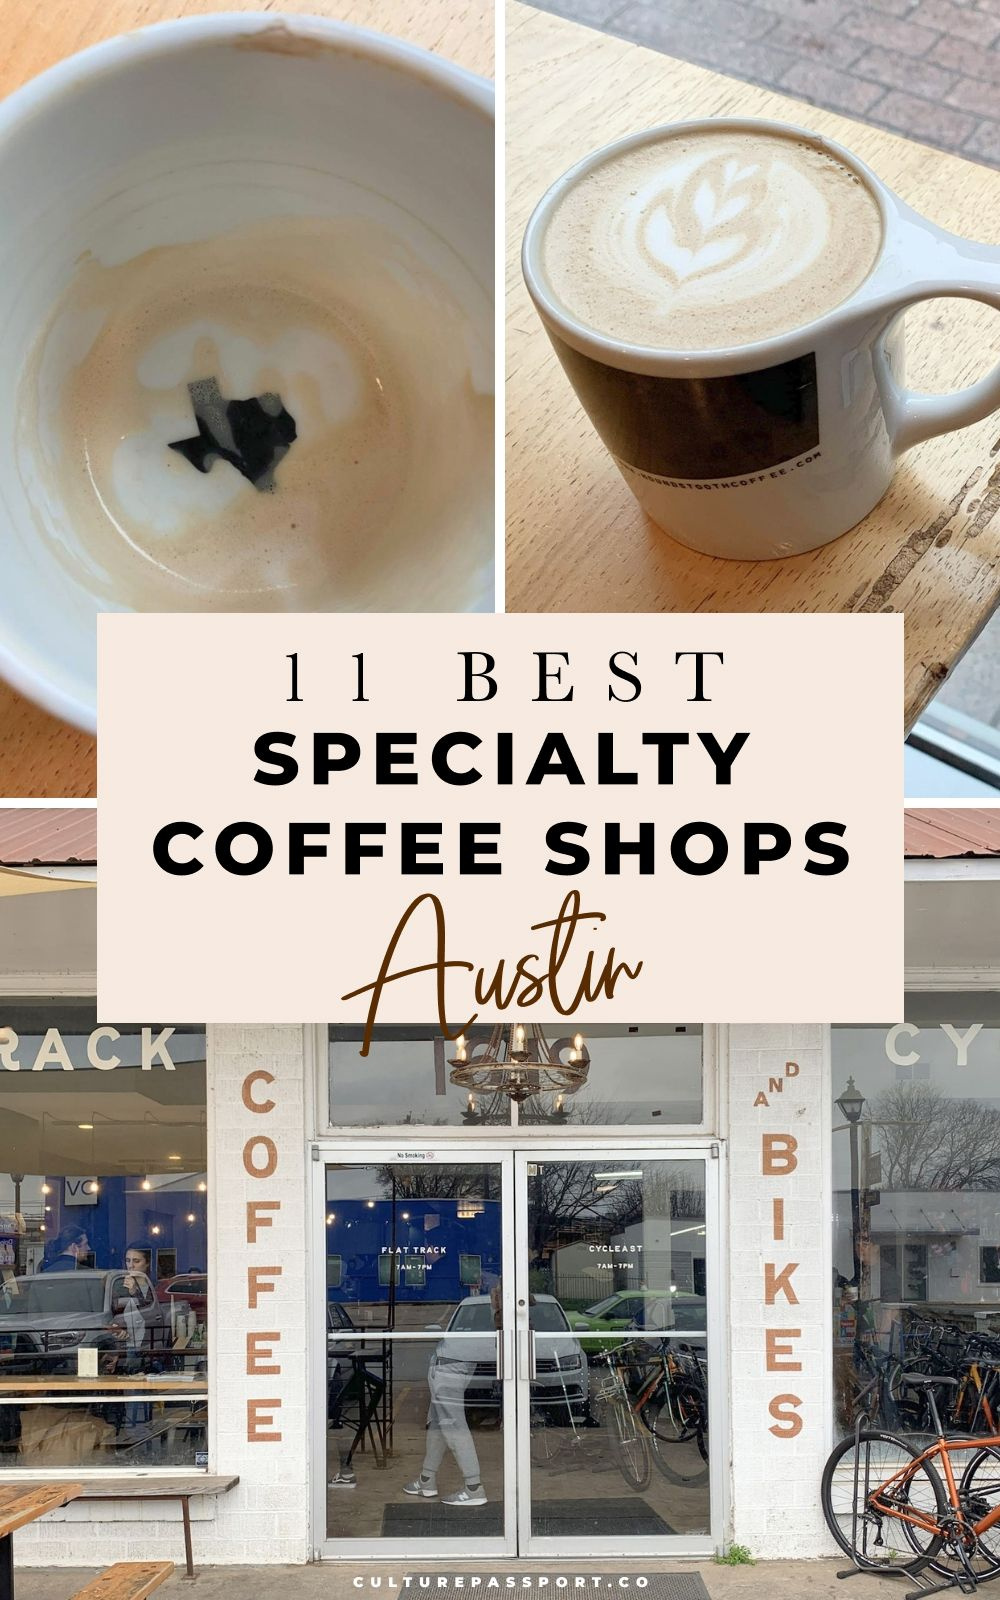 11 Best Specialty Coffee Shops in Austin, Texas